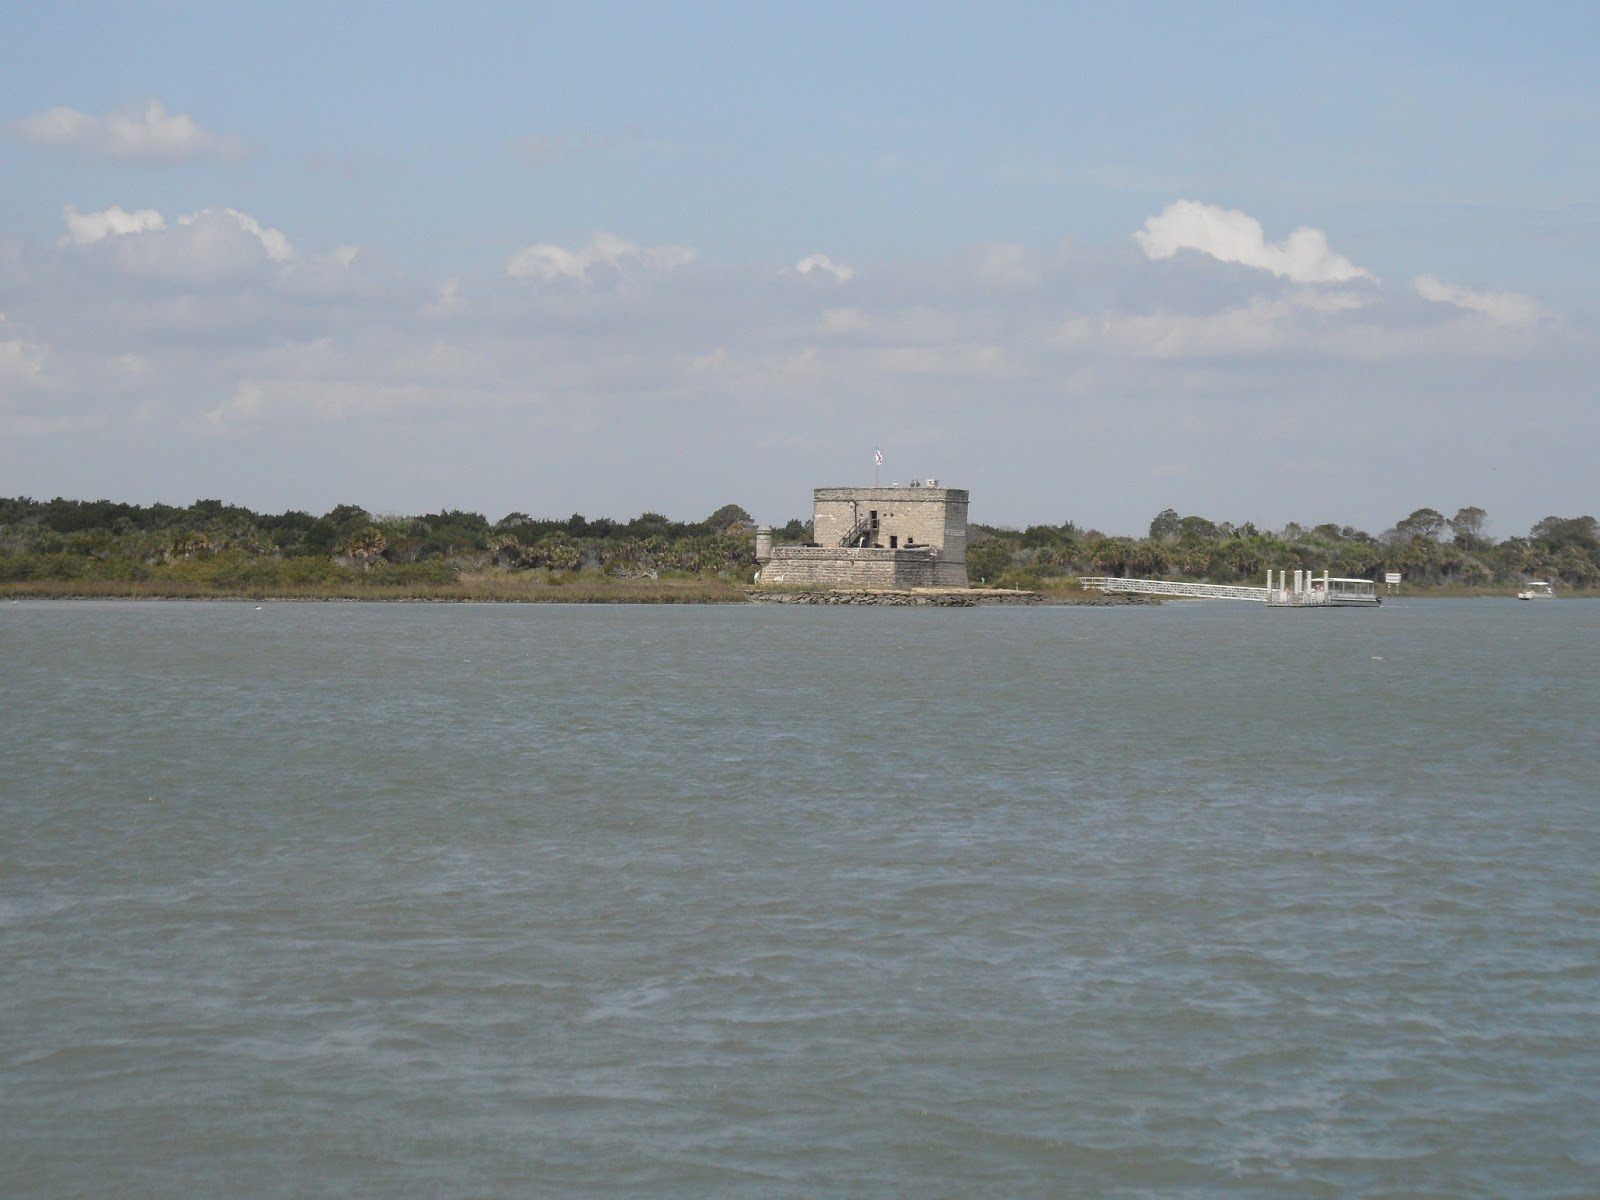 anton s wargame blog photo essay fort matanzas florida you can also get even more information about the spanish empire in florida from the nps website for the castillo de san marcos well worth the time both of